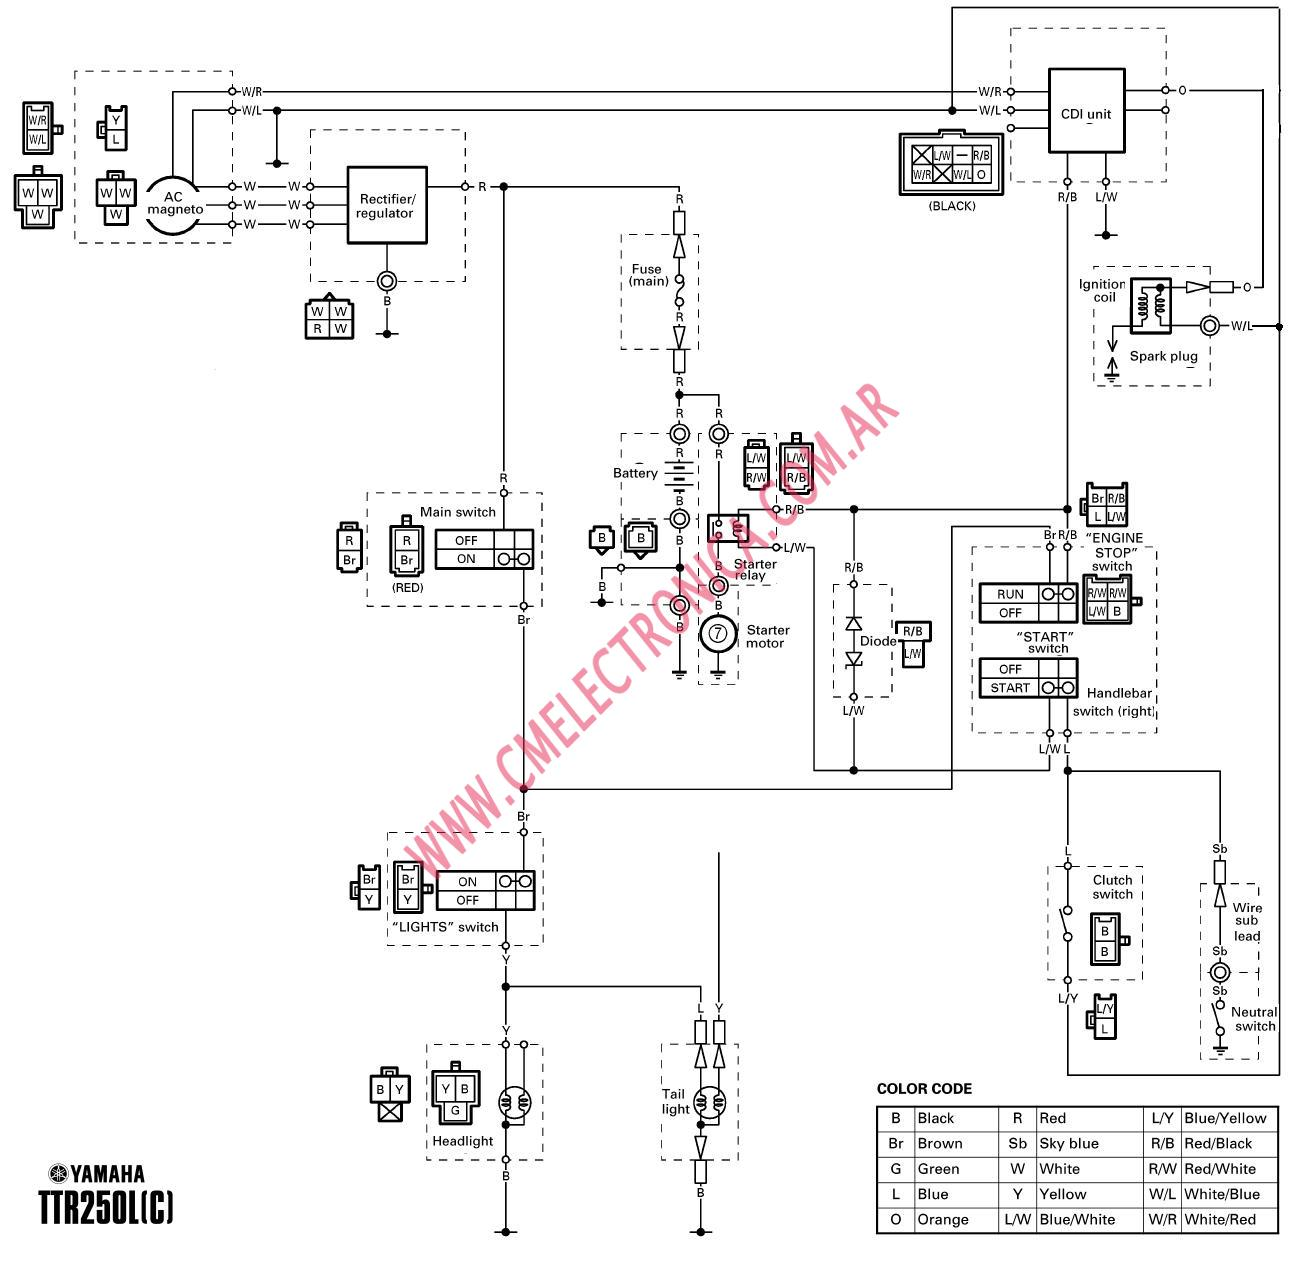 Yamaha Warrior 350 Carb Diagram moreover Kawasaki Atv Carburetor Diagram furthermore Yamaha Big Bear 400 Wiring Diagram besides Yamaha Big Bear 400 Parts Diagram besides Honda Atc 70 Wiring Diagram. on yamaha 250 bear tracker wiring diagram